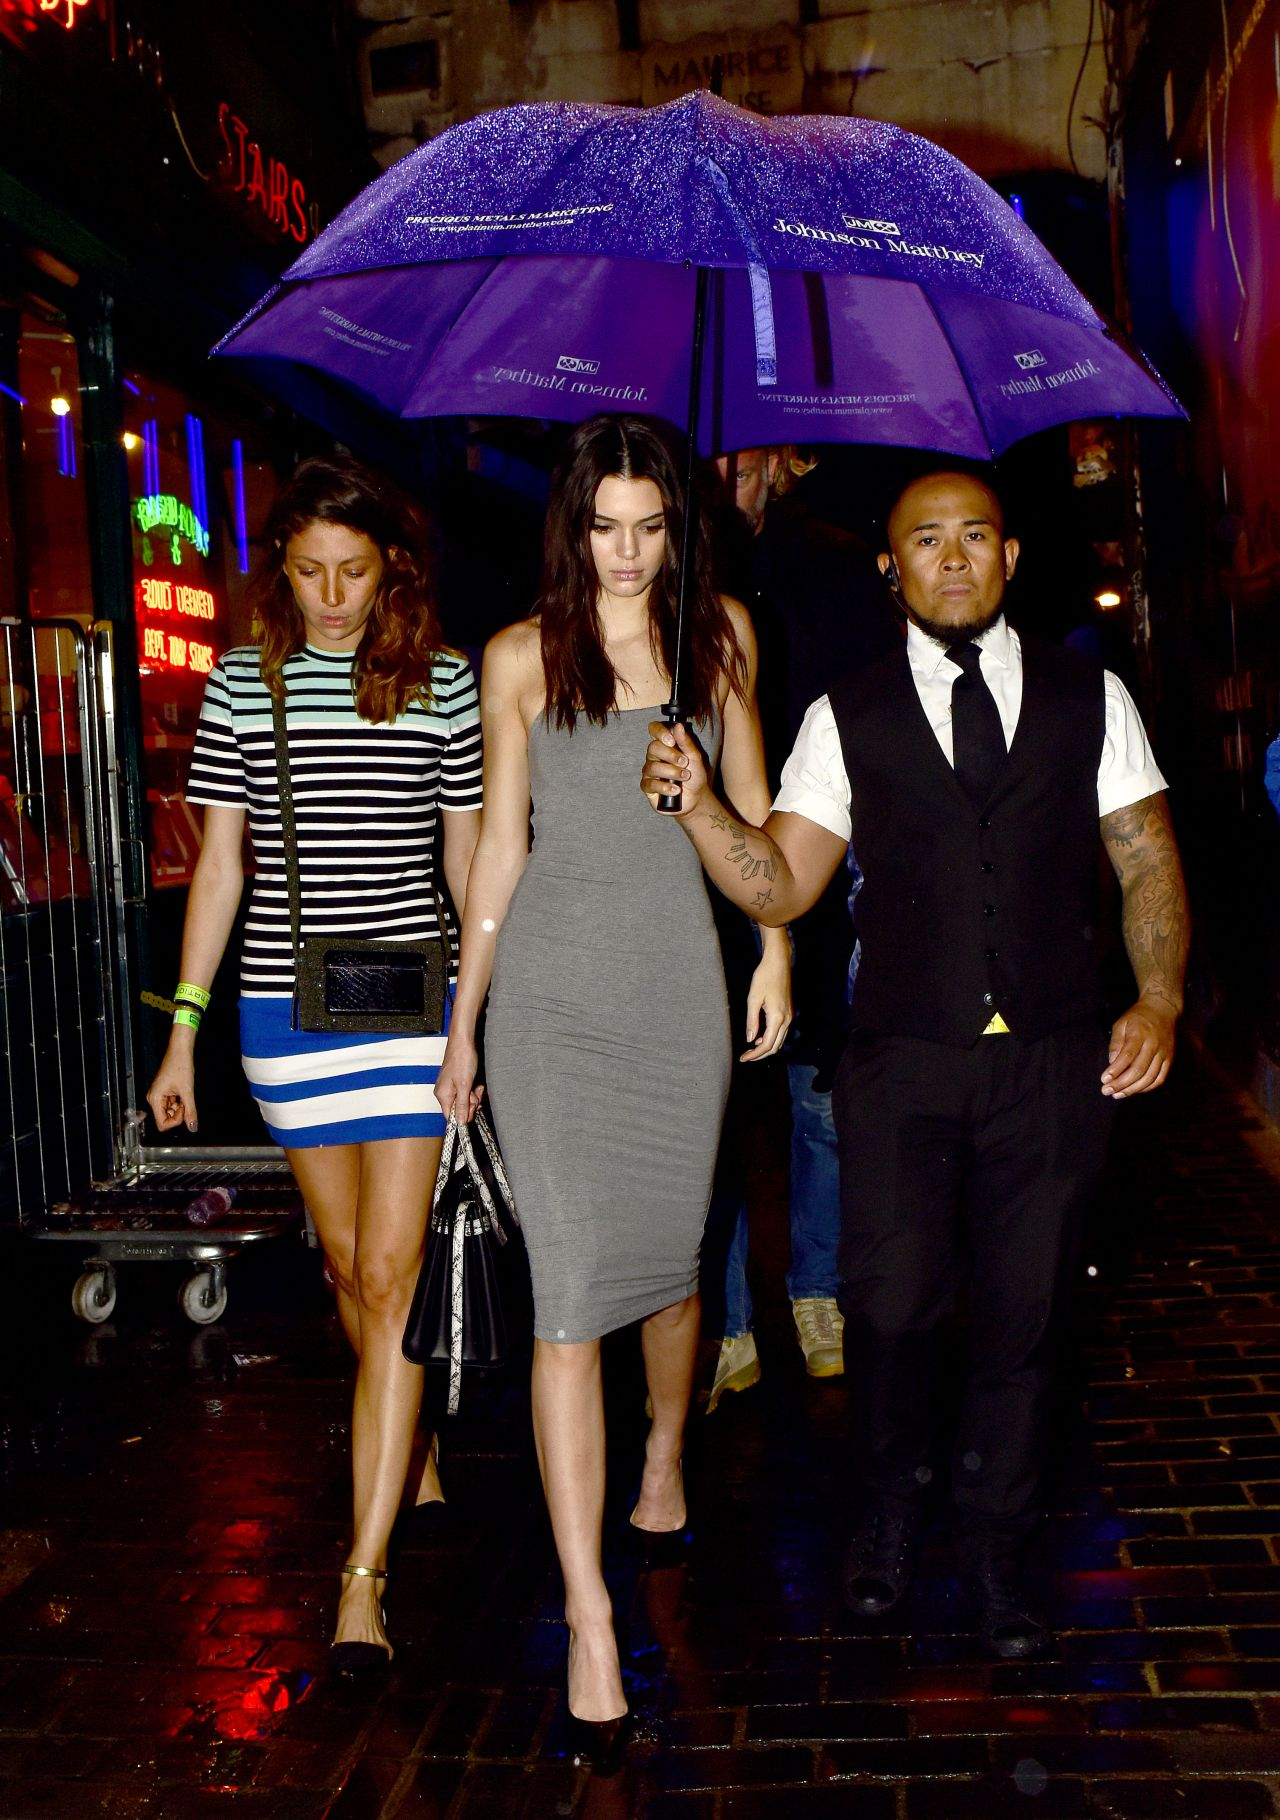 Kendall Jenner Leaving The Box Club In London July 2015